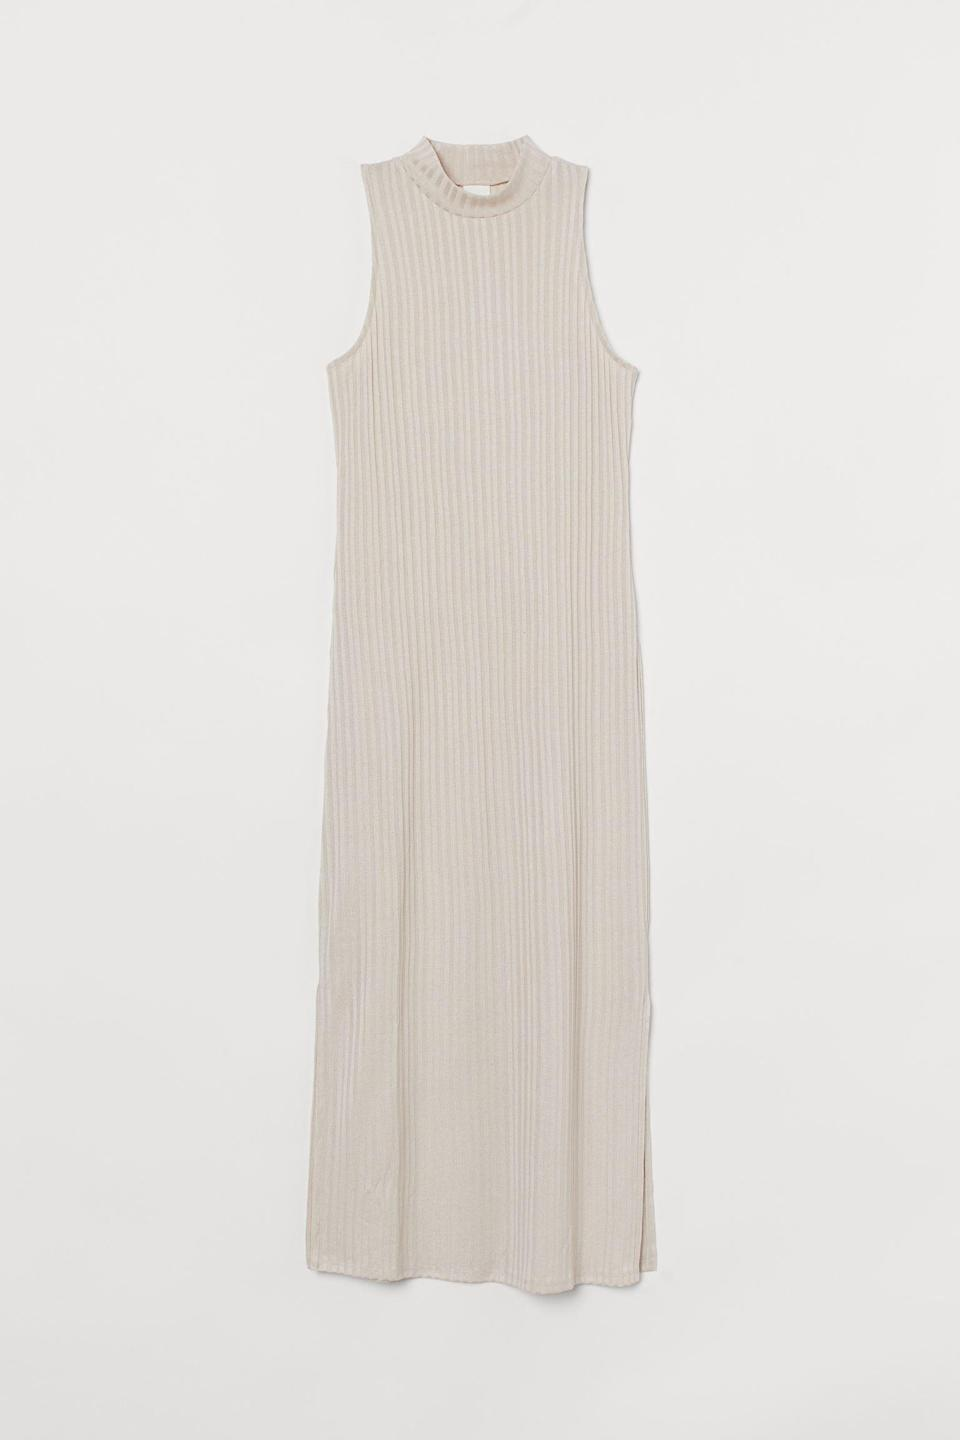 <p>This <span>H&amp;M Ribbed Dress</span> ($7, originally $18) will look great with slide sandals, espadrilles, or sneakers.</p>